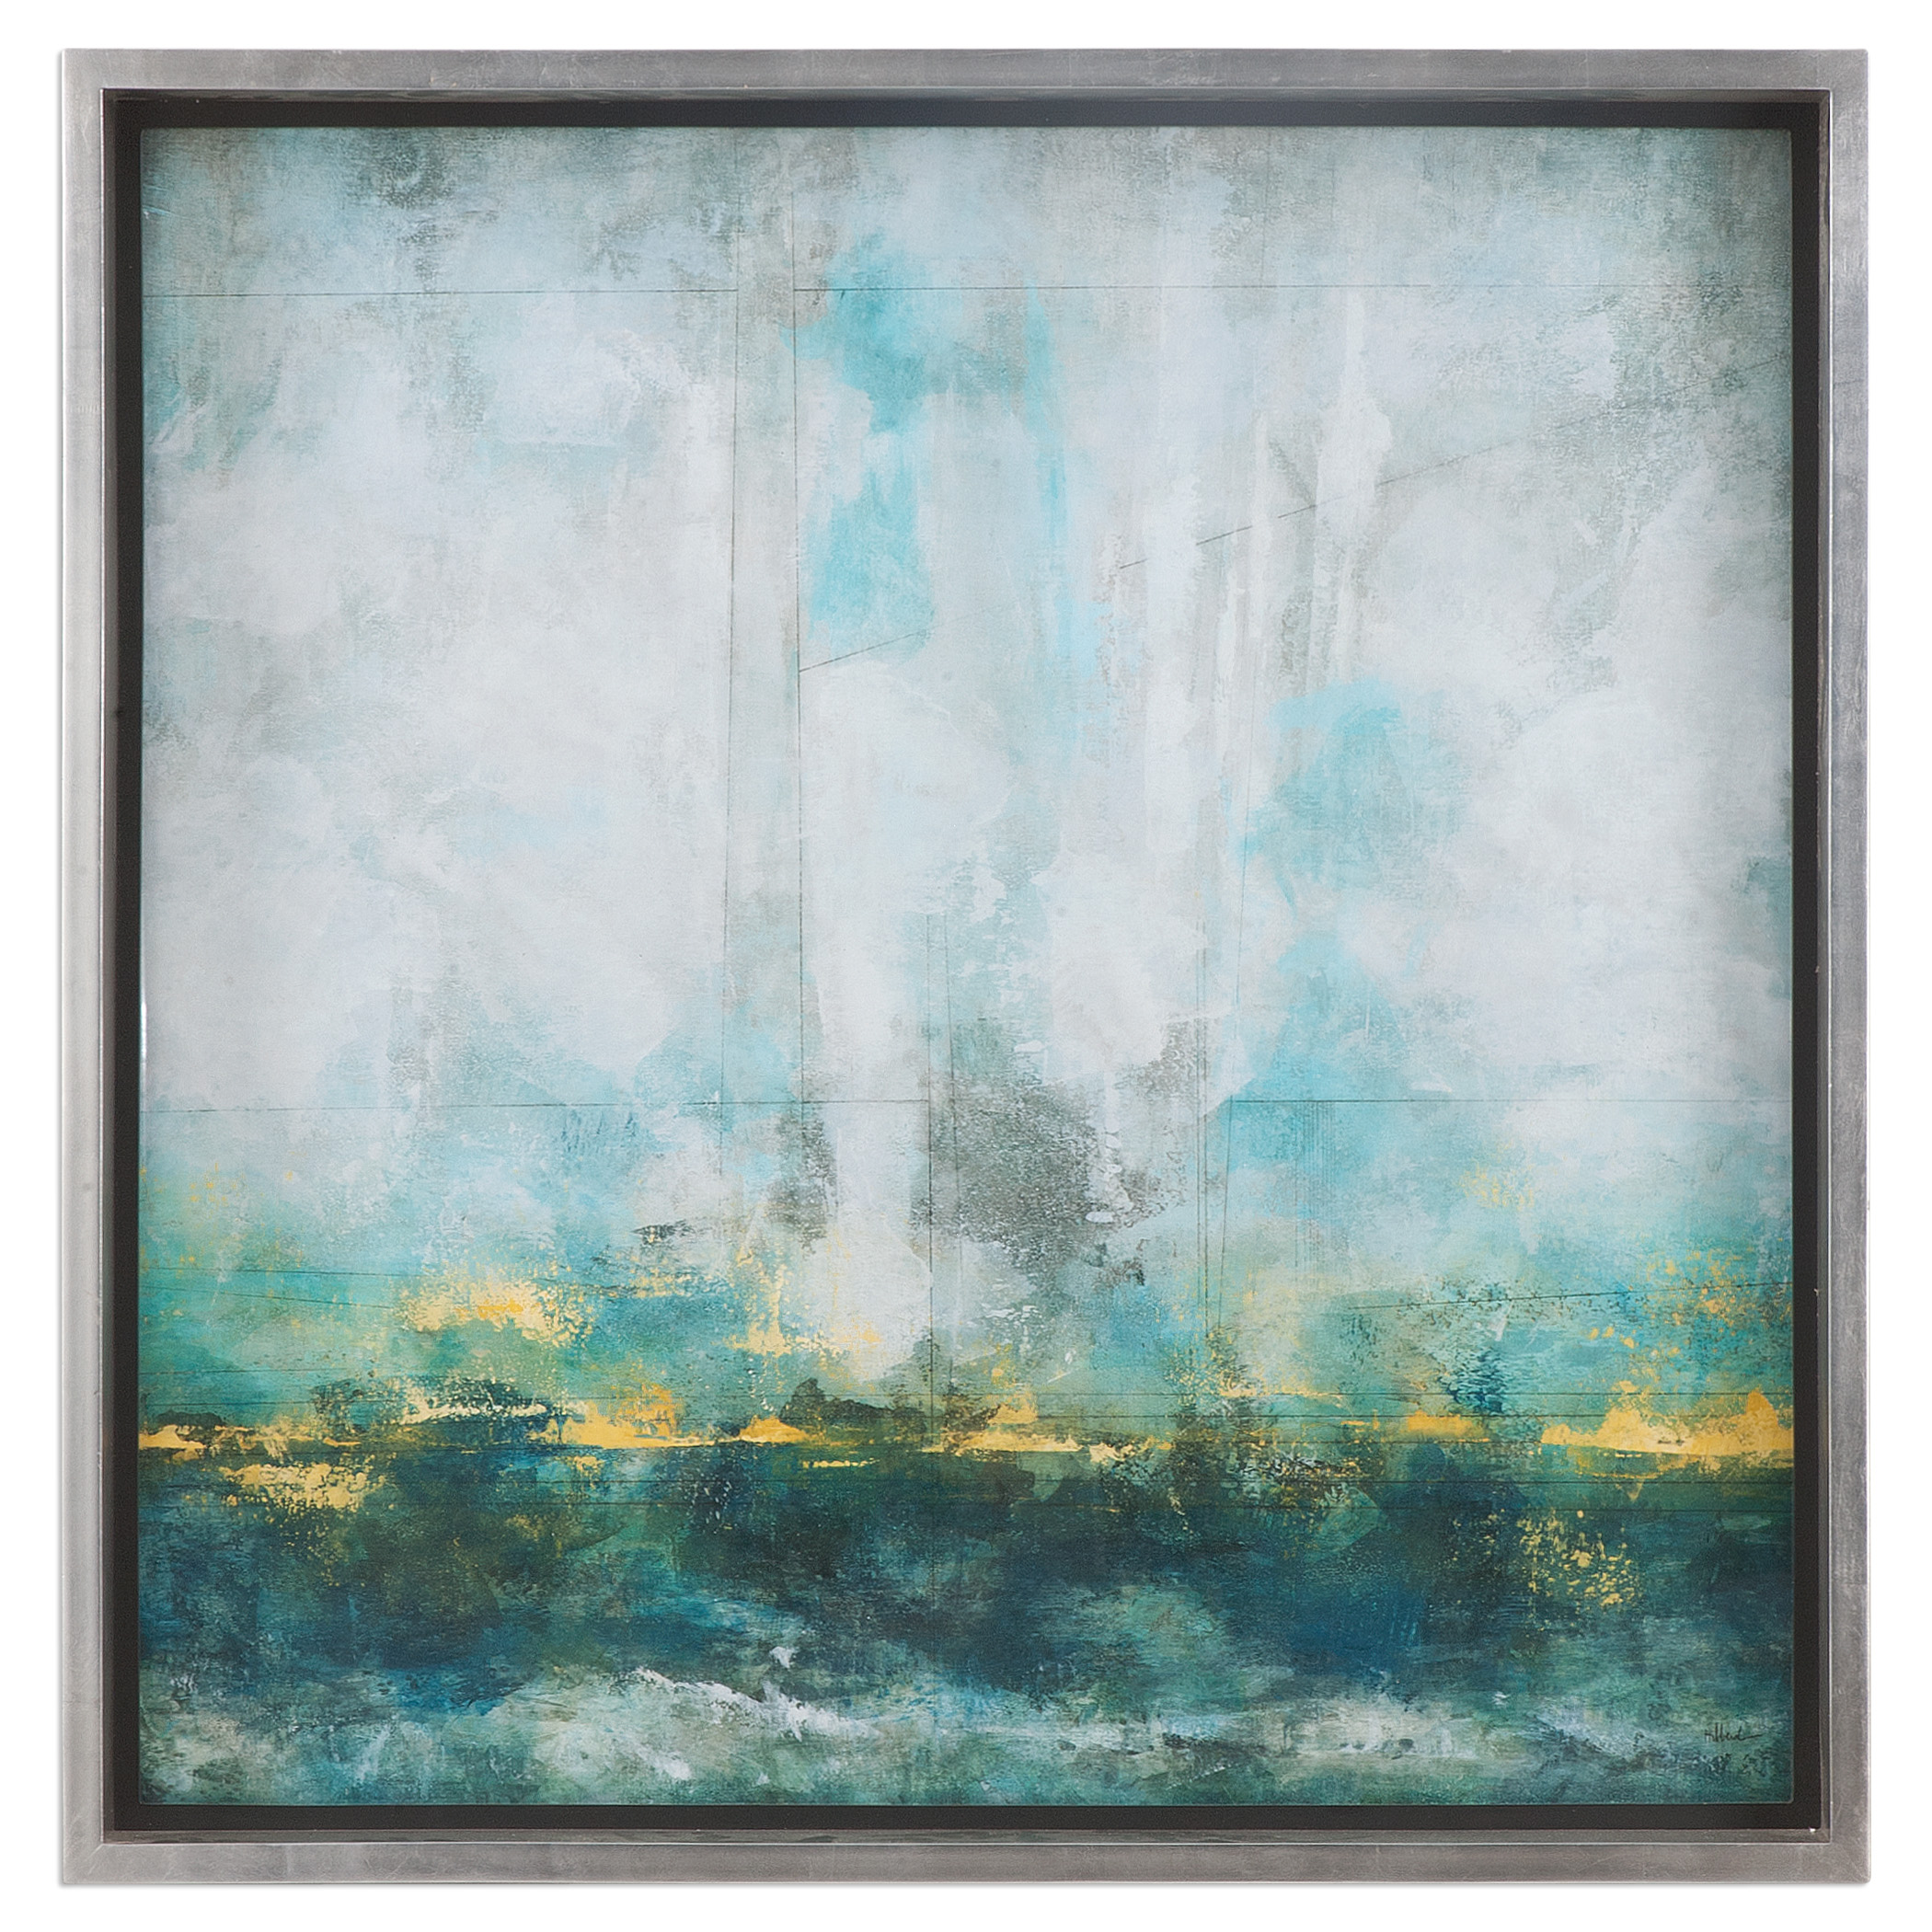 Uttermost Art Aqua Blue Abstract Art - Item Number: 41553